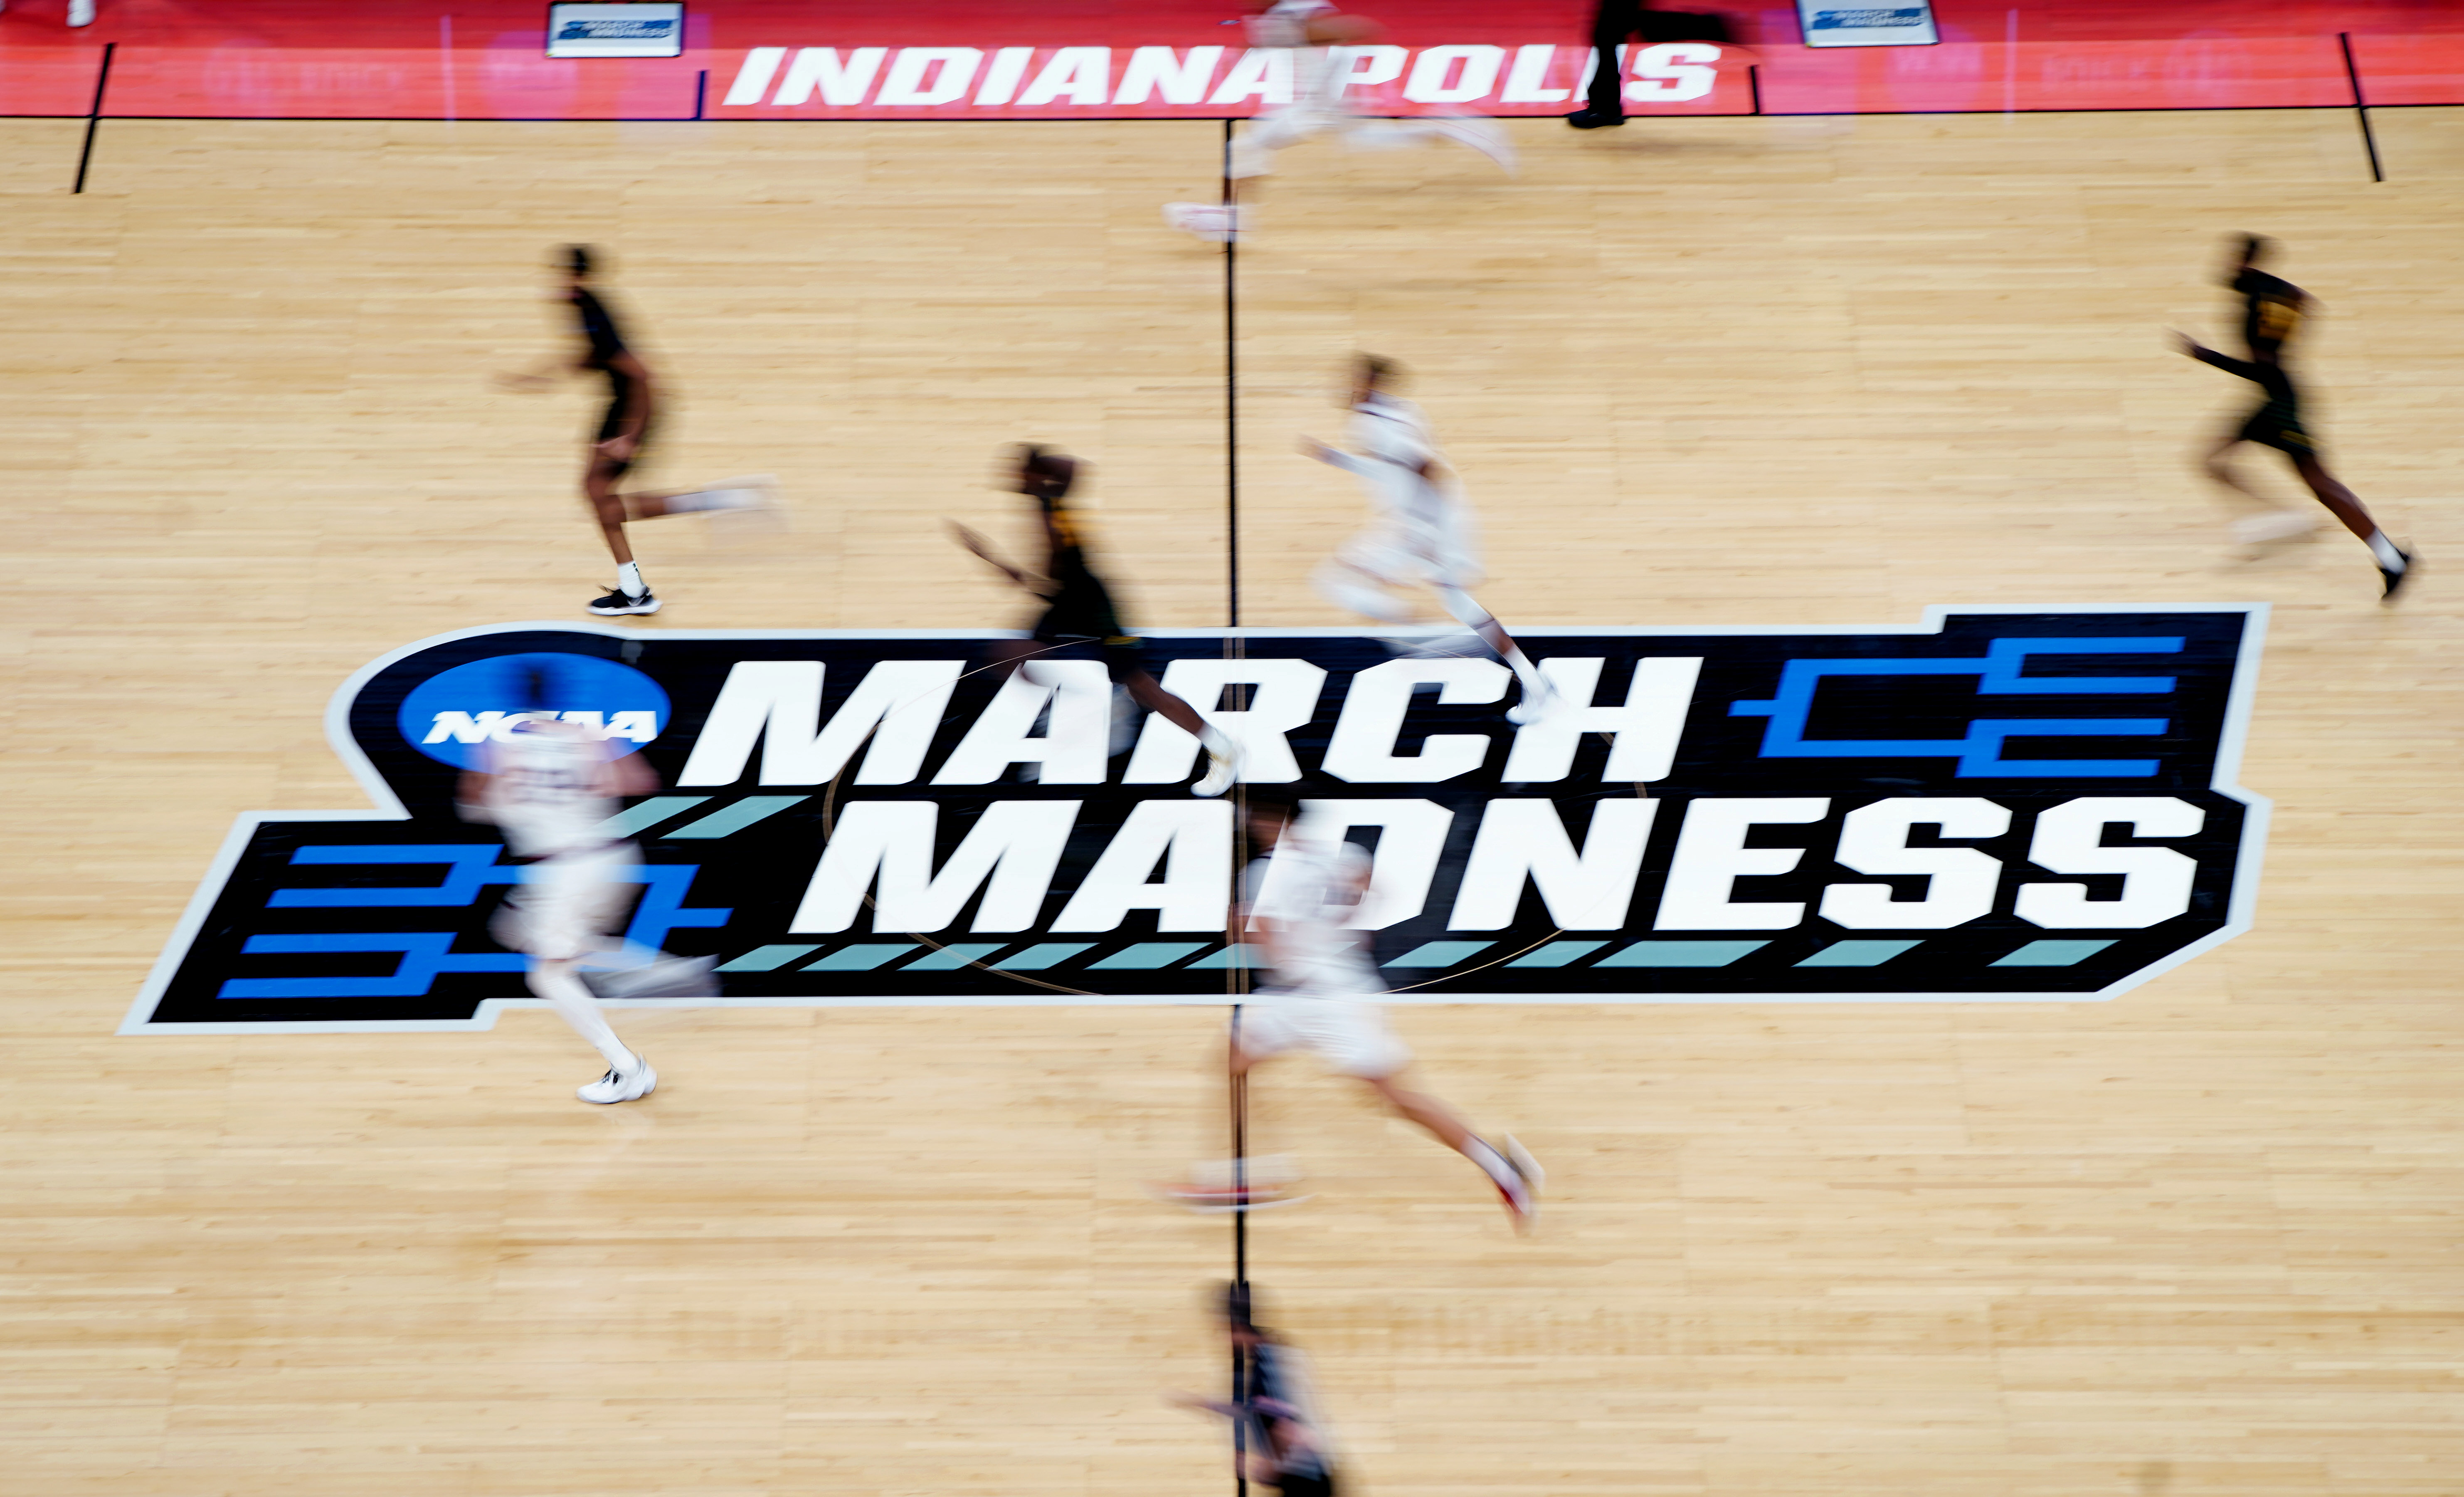 FILE PHOTO: A detailed view of the March Madness logo at center court as Gonzaga Bulldogs and Norfolk State Spartans players run by during the second half in the first round of the 2021 NCAA Tournament at Bankers Life Fieldhouse, Indianapolis, Indiana, March 20, 2021. Kirby Lee-USA TODAY Sports/File Photo